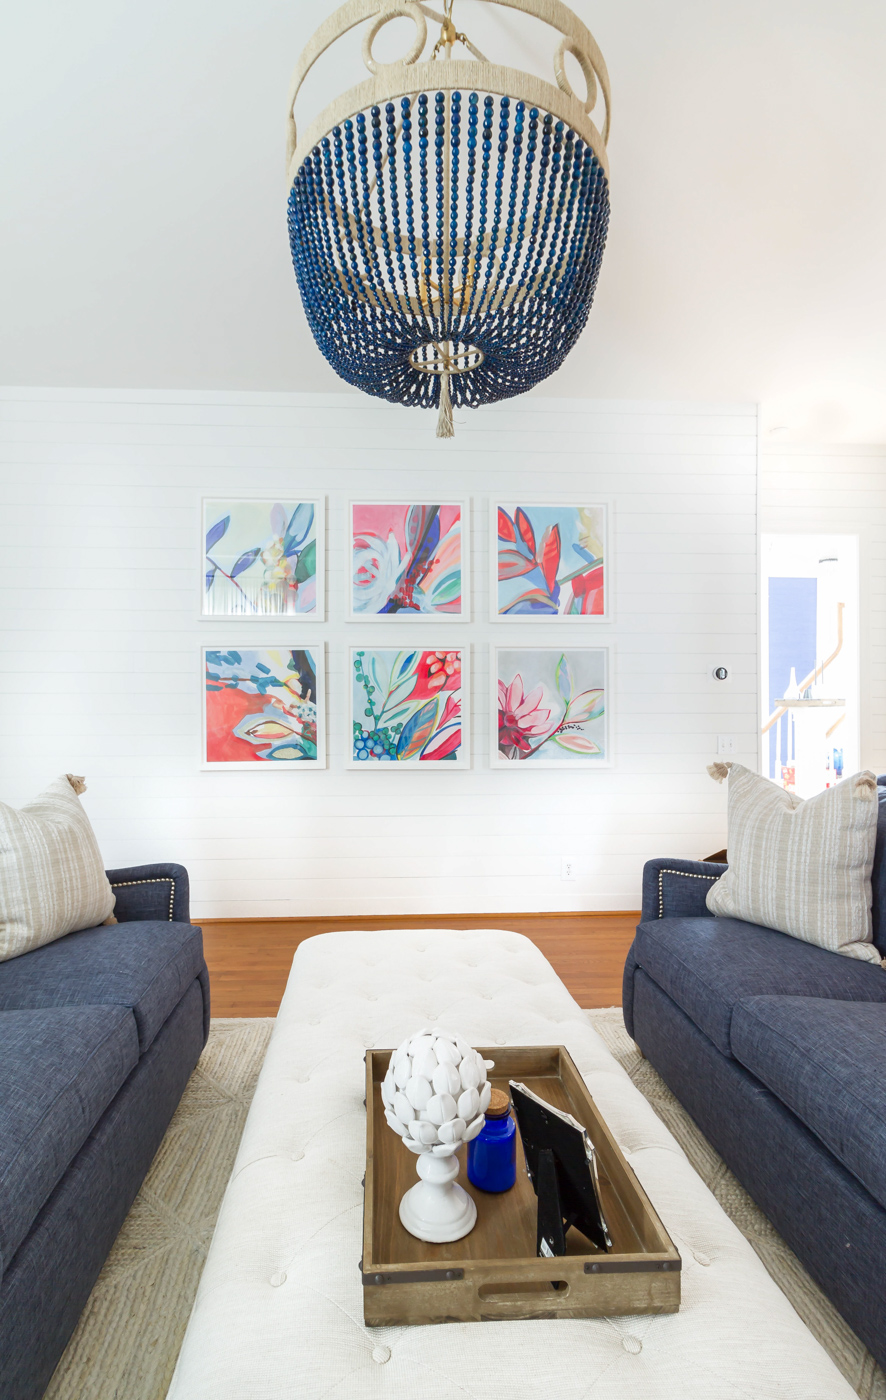 Eclectic Home Tour - love the white shiplap walls as a backdrop for a colorful gallery wall and statement chandelier #art #chandelier #lighting #livingroom